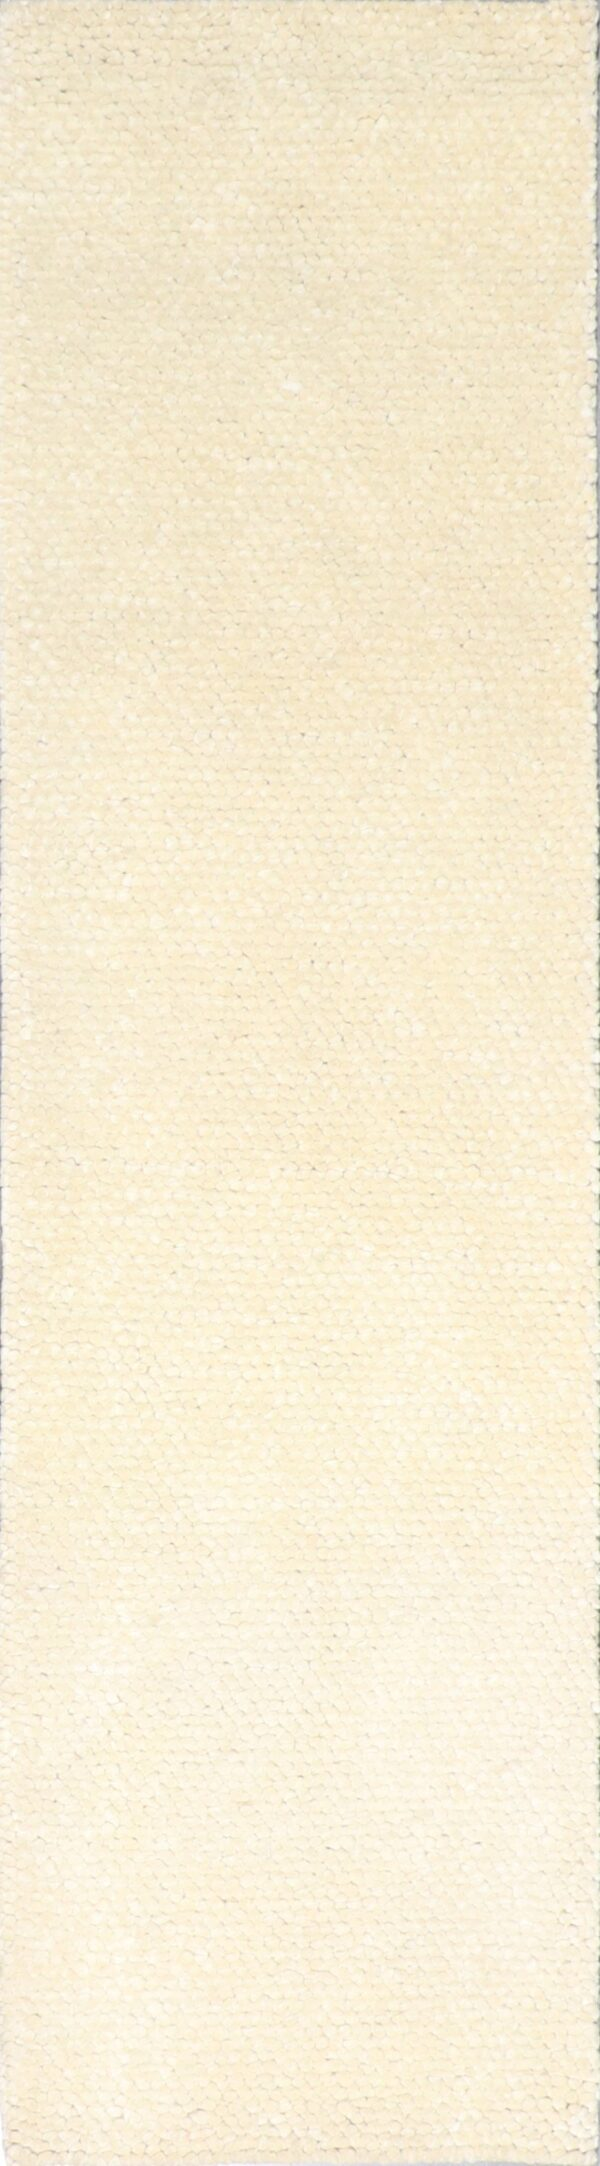 """2'5""""x9'4"""" Contemporary Ivory Wool Hand-Tufted Rug - Direct Rug Import 